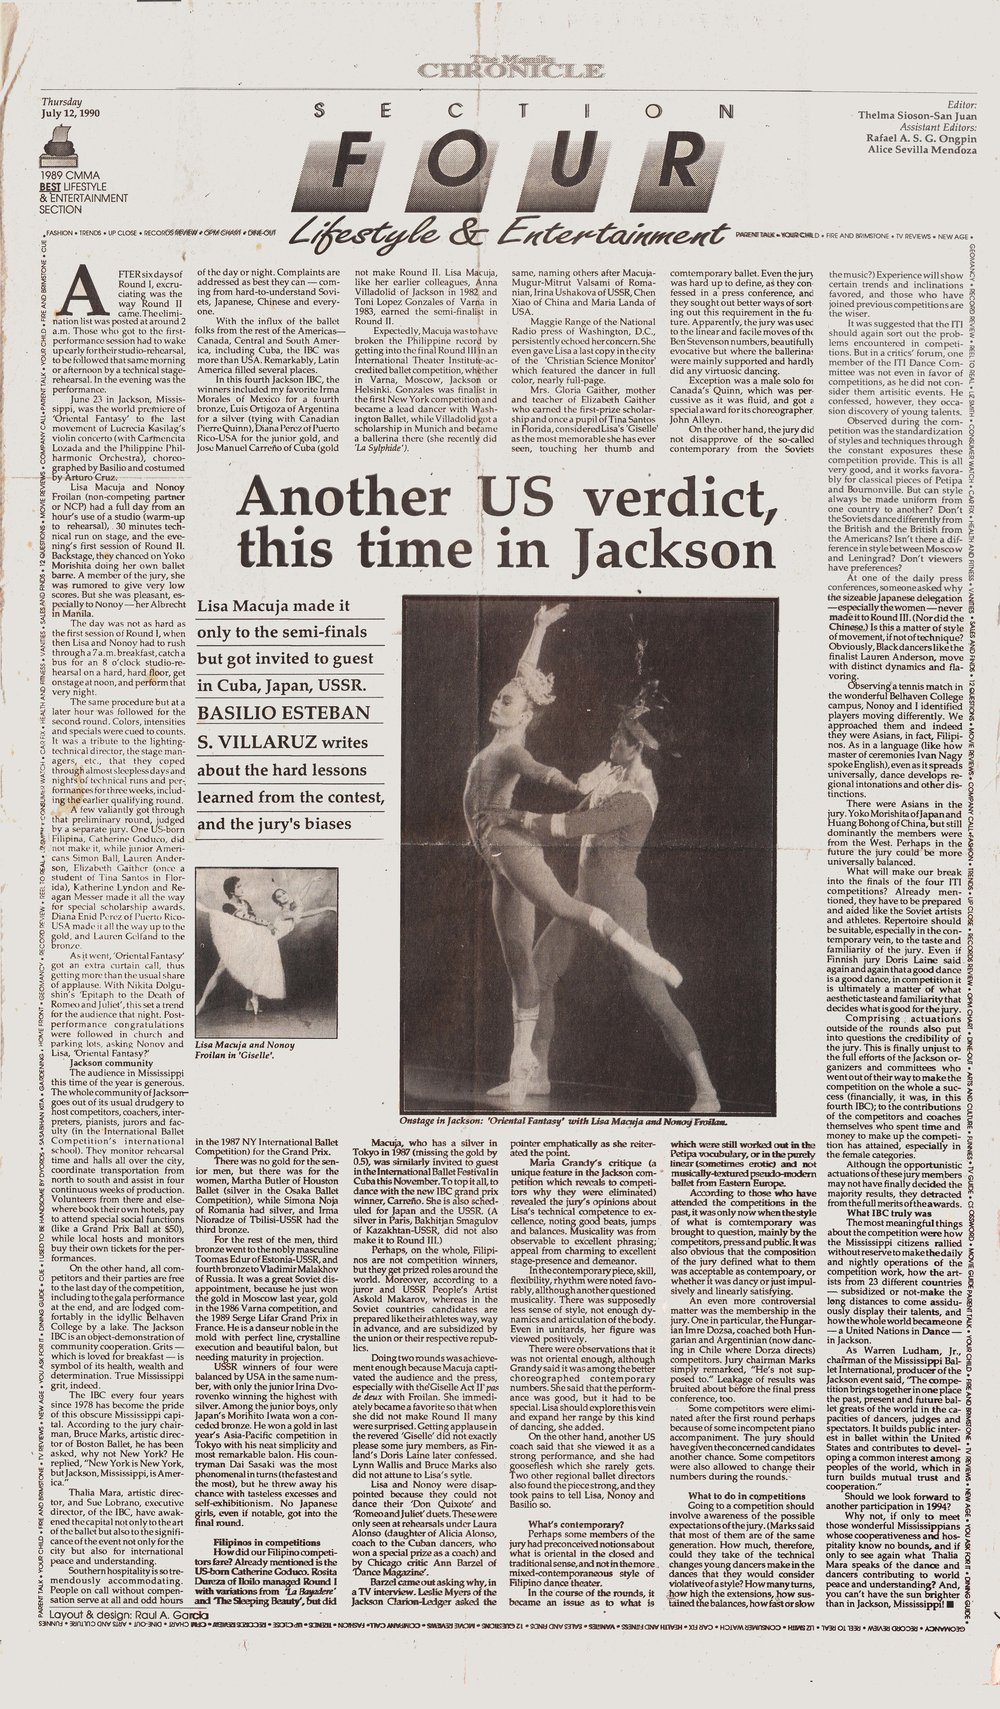 Coach Steve Villaruz wrote about the Jackson experience in    The Manila Chronicle   . In this story, he shares details on how Lisa and Nonoy rehearsed and competed, noting how they danced the Act 2 pas de deux from    Giselle    and moving on to Round 2 to perform Oriental Fantasy. But since the couple didn't make it to Round 3, Steve also relates their disappointment about not getting to show their strongest pieces – the    Don Quixote    pas de deux and the    Romeo and Juliet    balcony scene. He notes, however, that competing in Jackson resulted in Lisa being invited to perform in Cuba, Japan and the USSR.